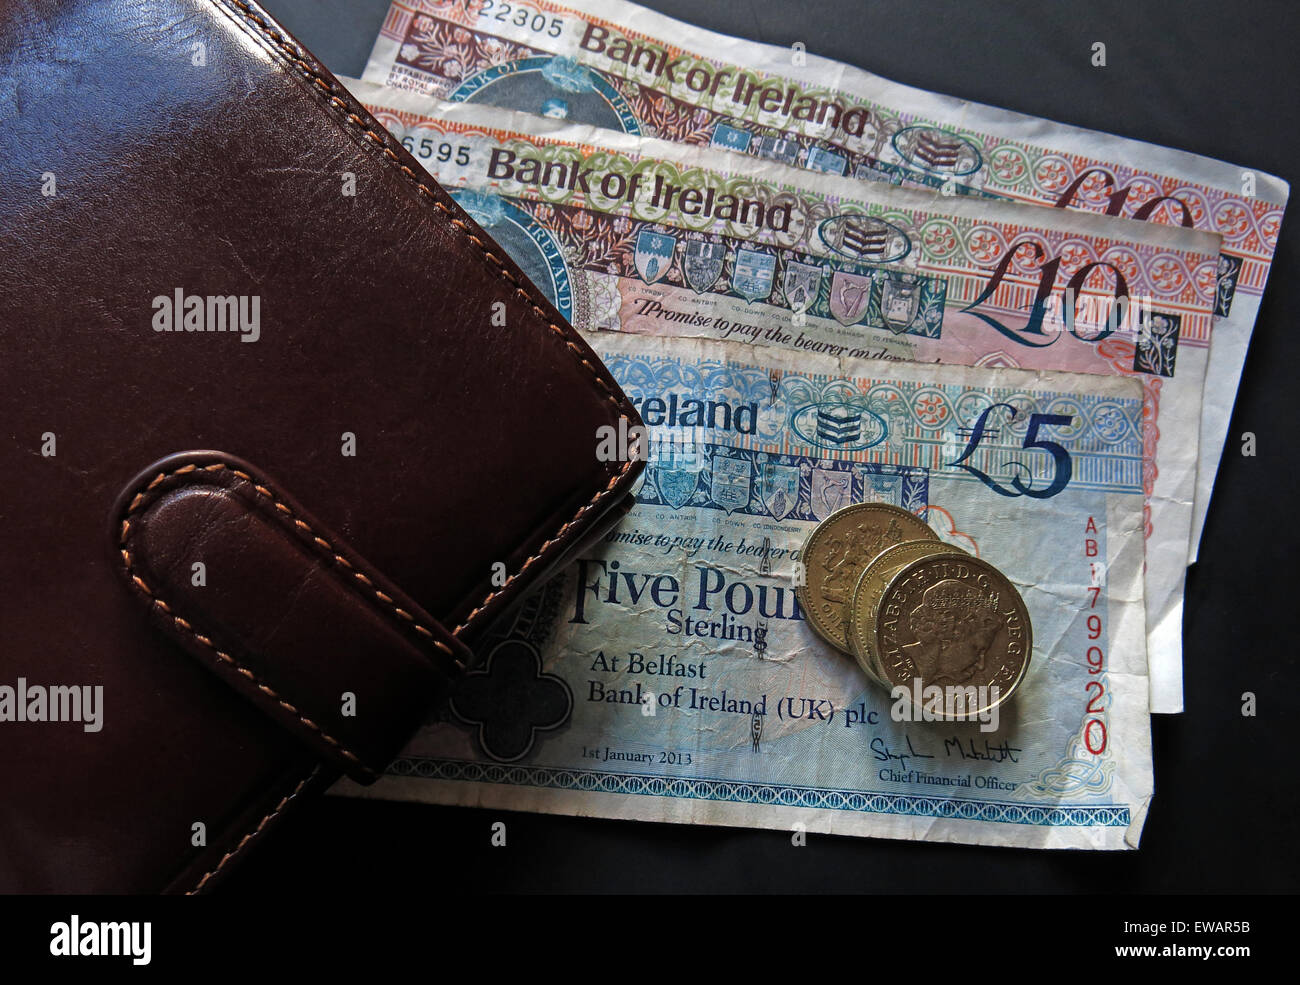 Northern Irish £5, £10 notes and pound coins, legal tender from the Bank Of Ireland  Belfast, next a wallet - Stock Image